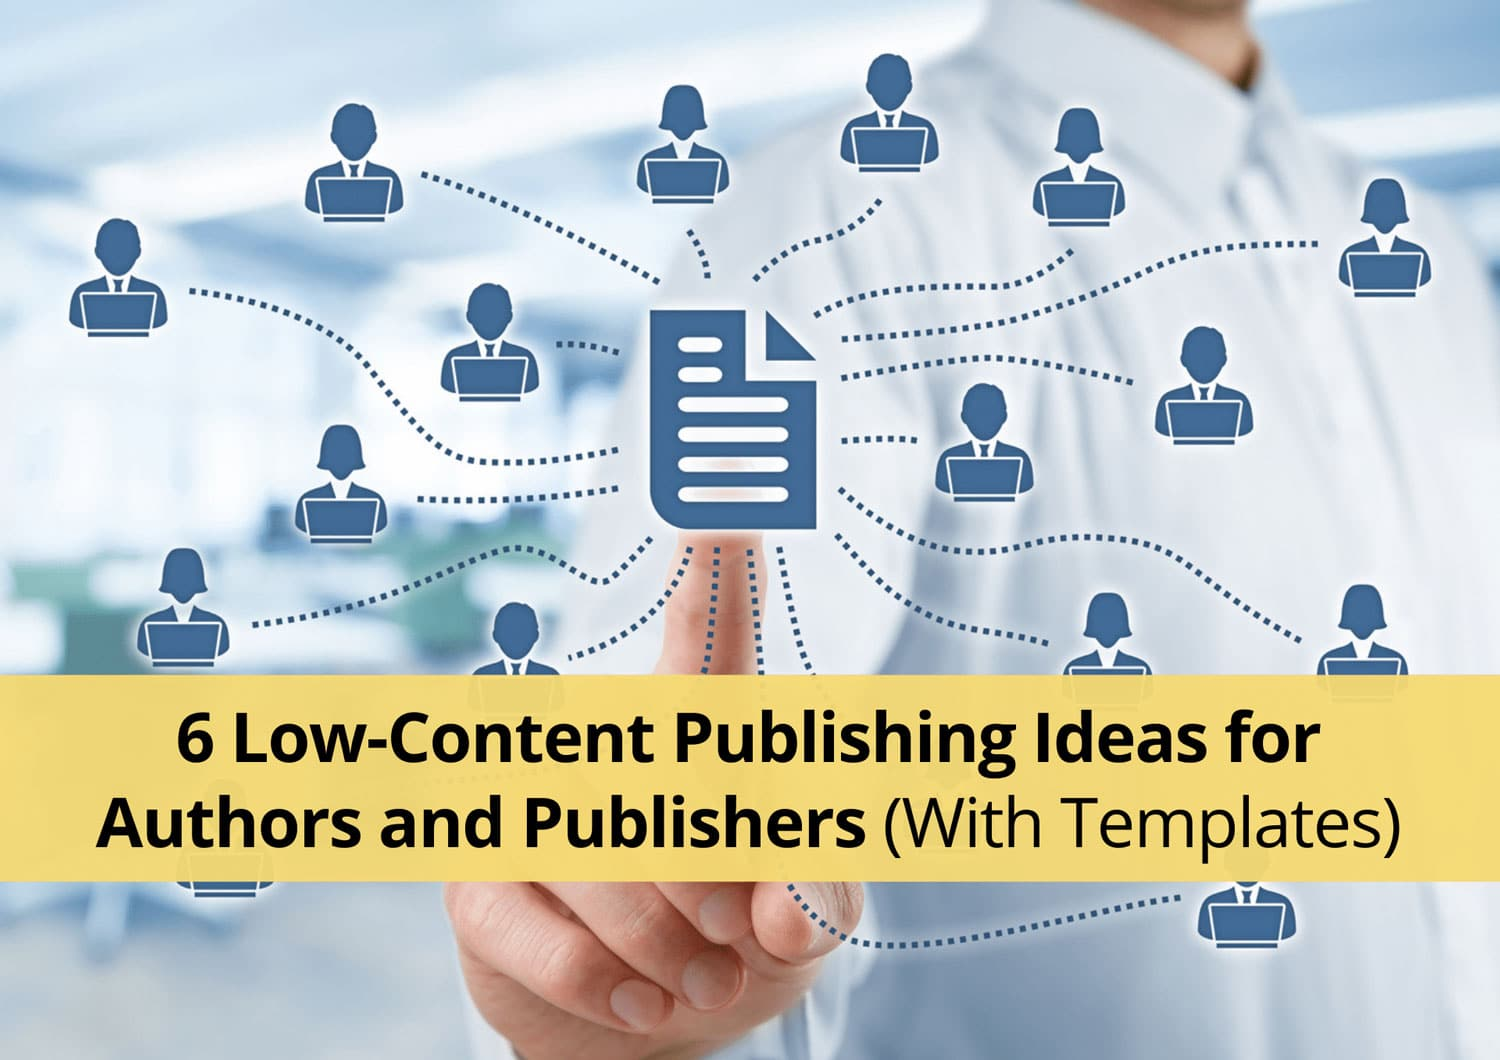 6 Low-Content Publishing Ideas for Authors and Publishers (With Templates)